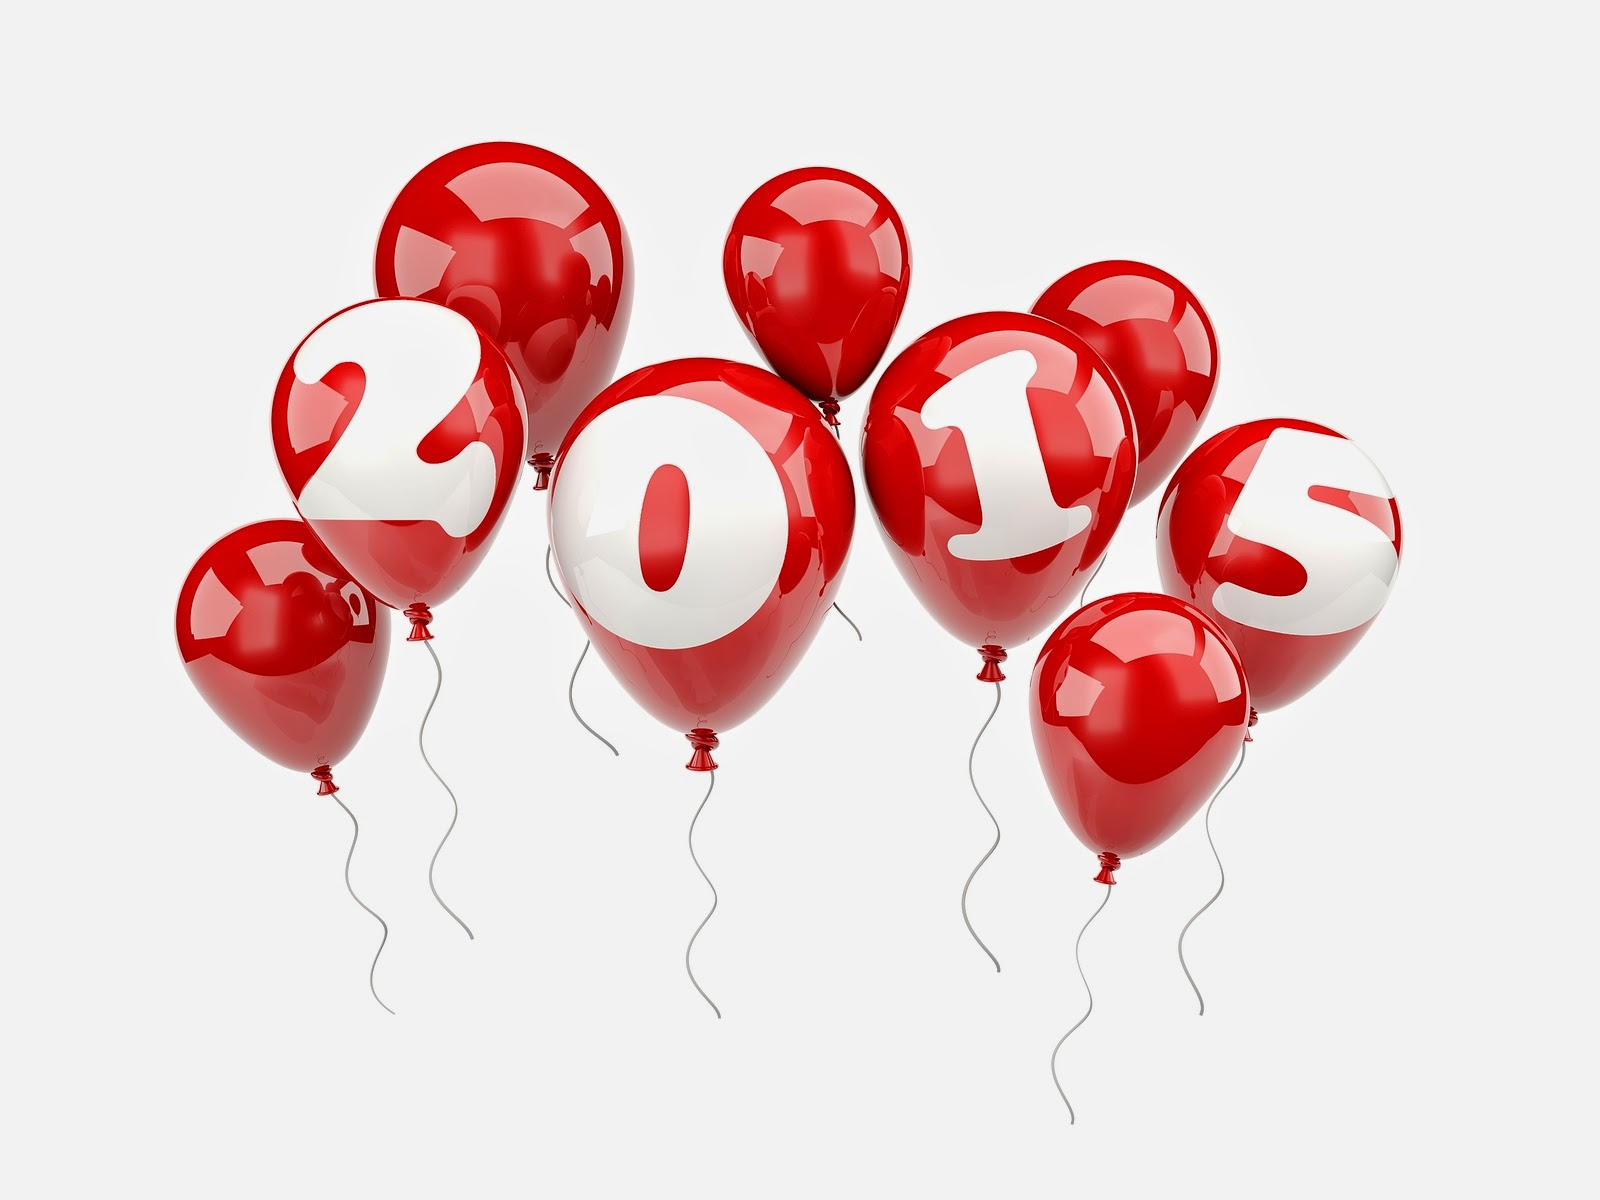 best funny happy new year photos wallpapers 1600x1200